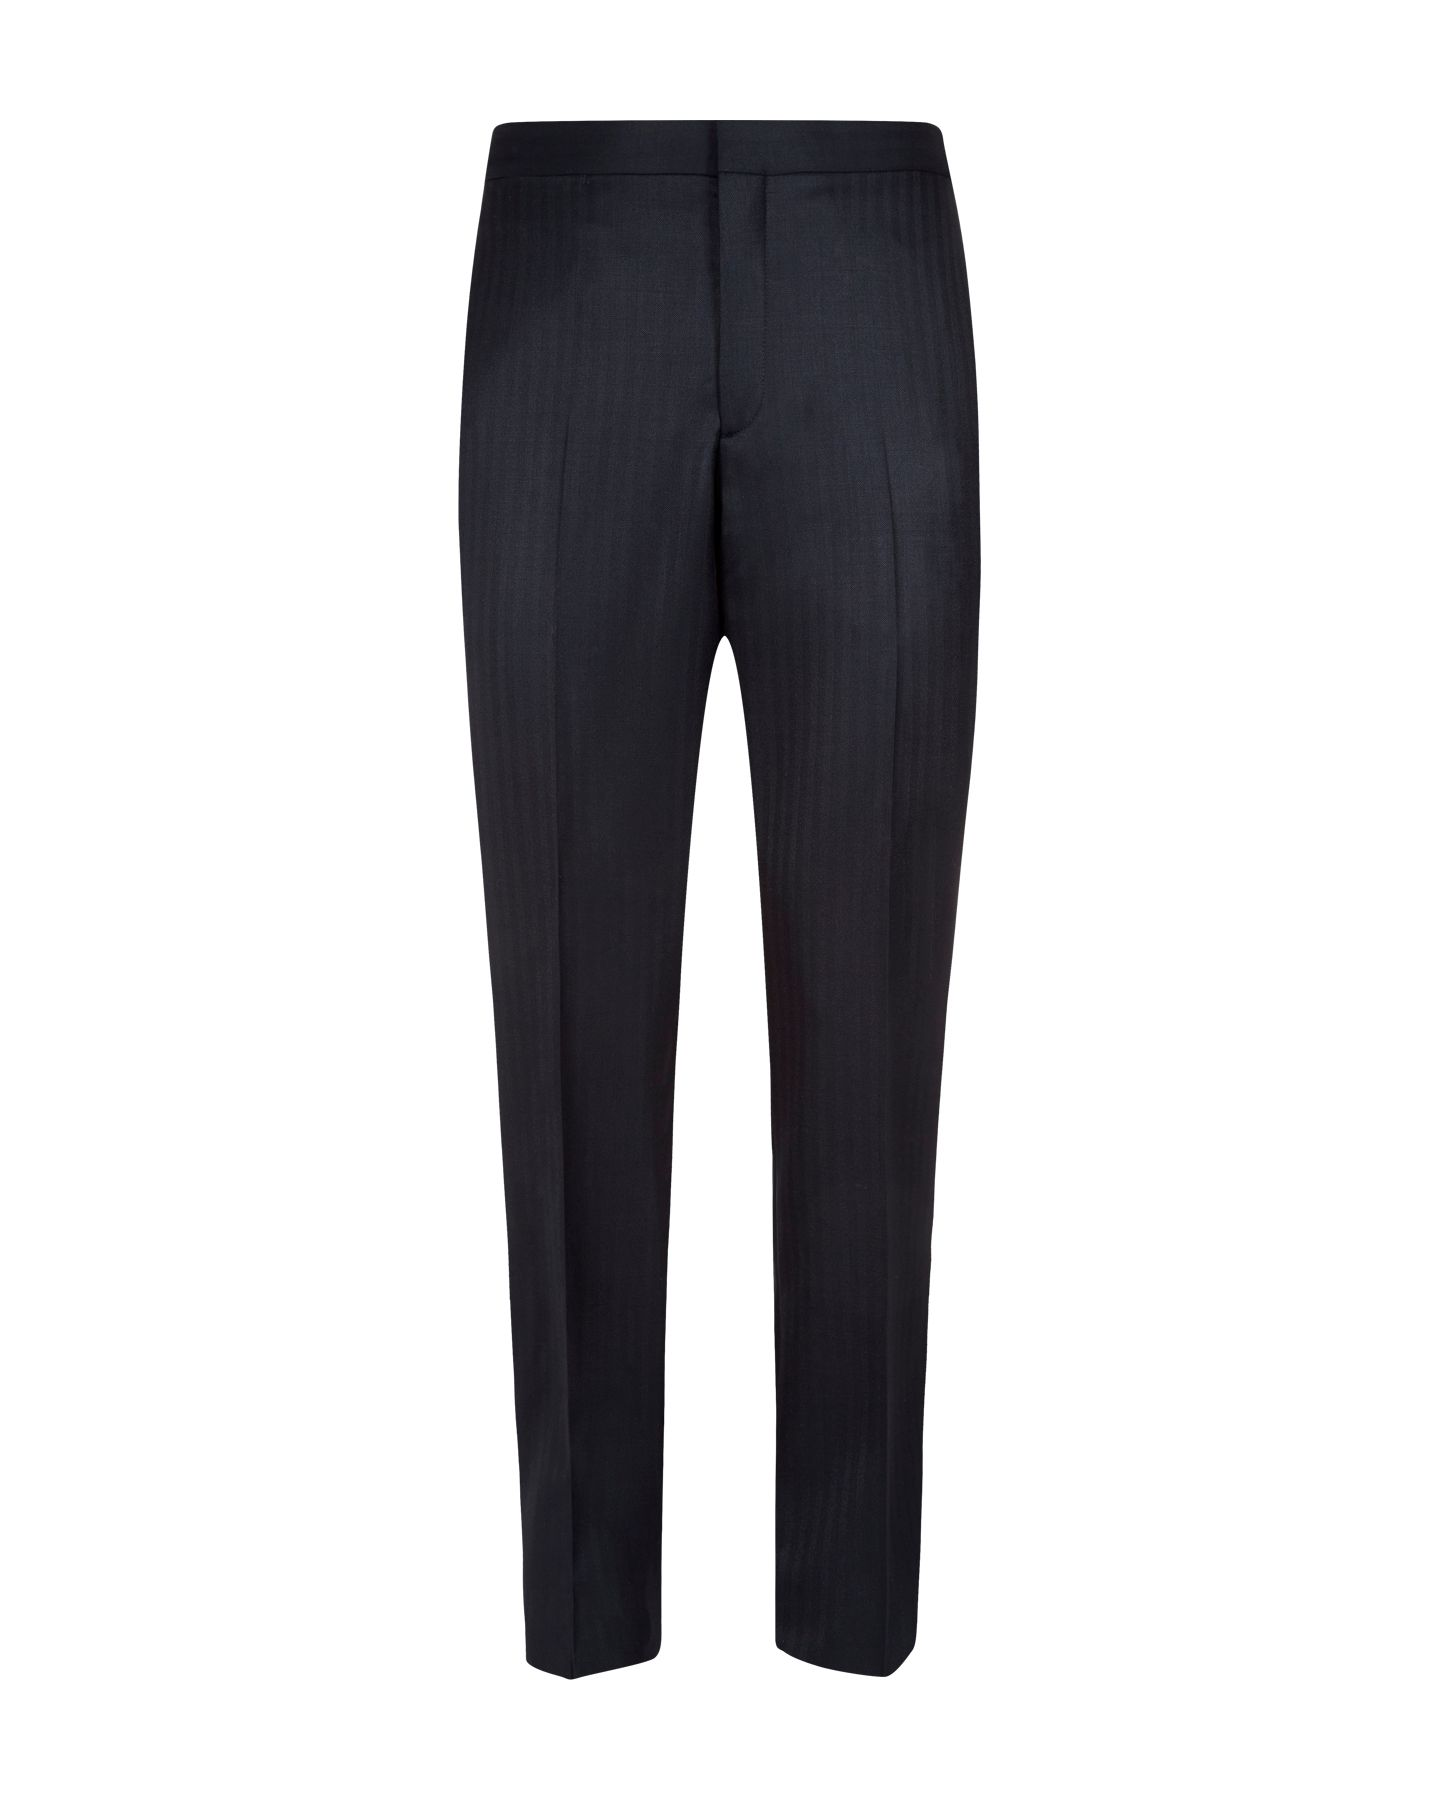 Herringbone twill formal suit trouser